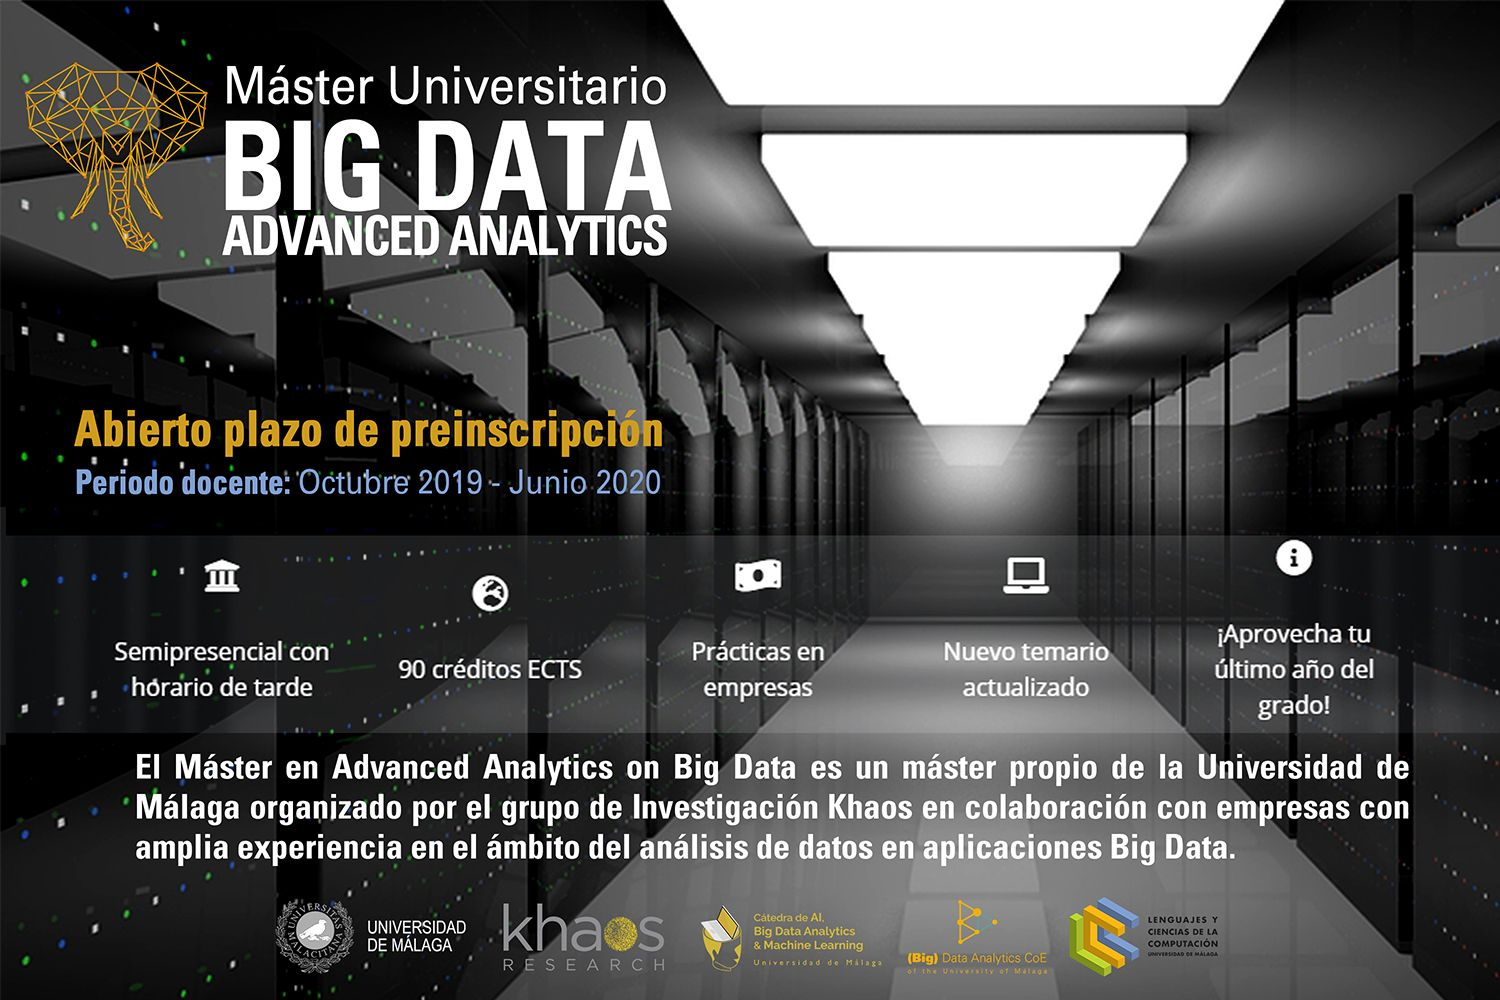 La UMA abre el período de preinscripción de la IV Edición del Máster Advanced Analytics on Big Data